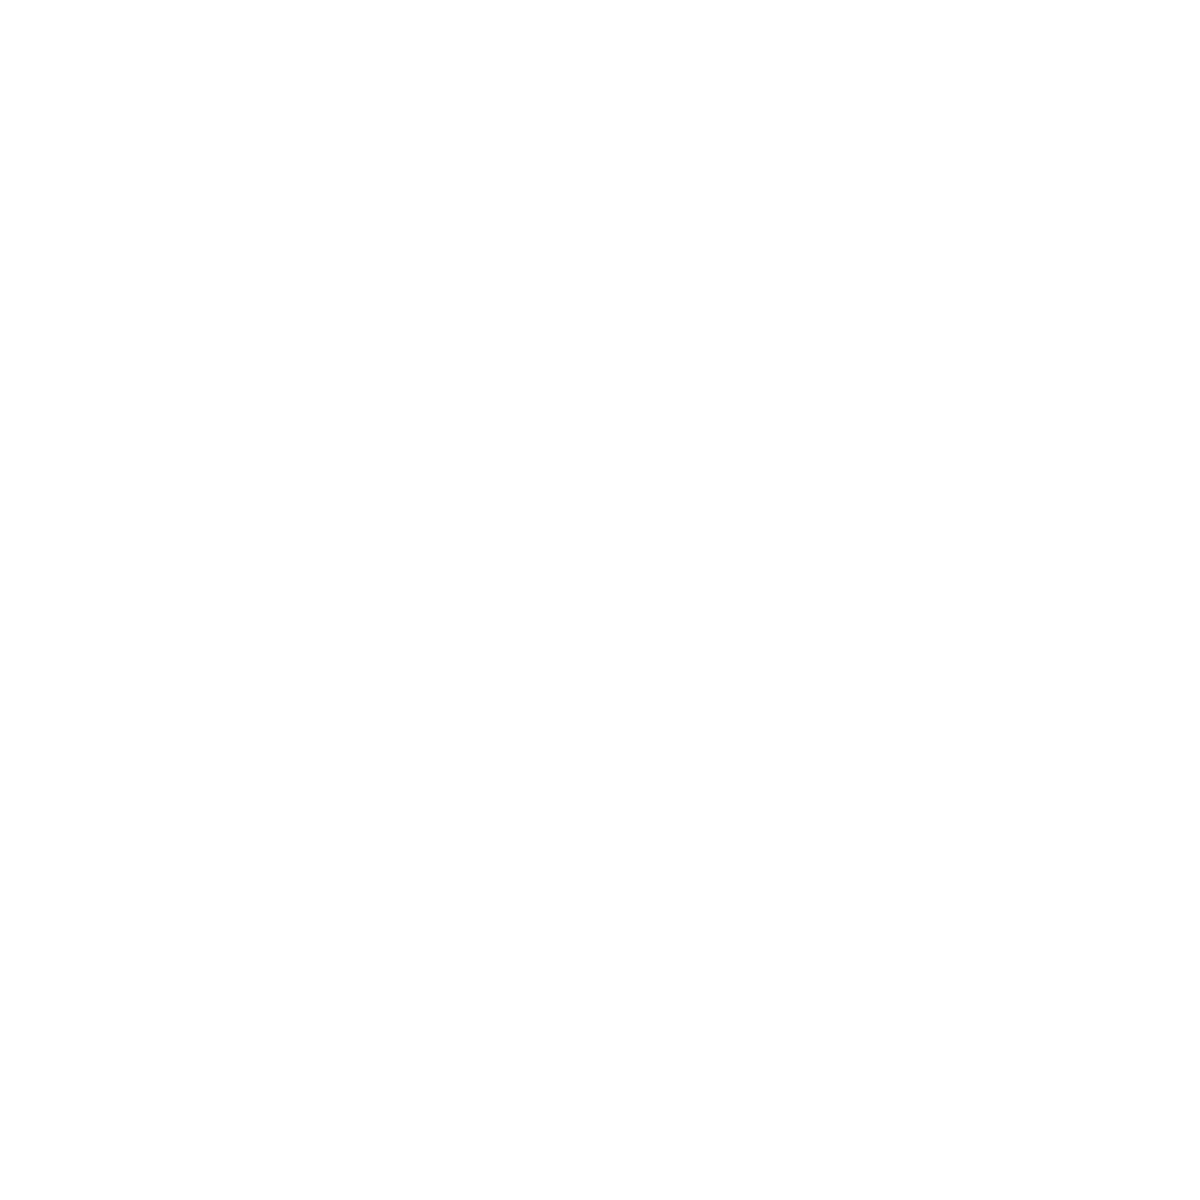 MT & CO PRODUCTIONS